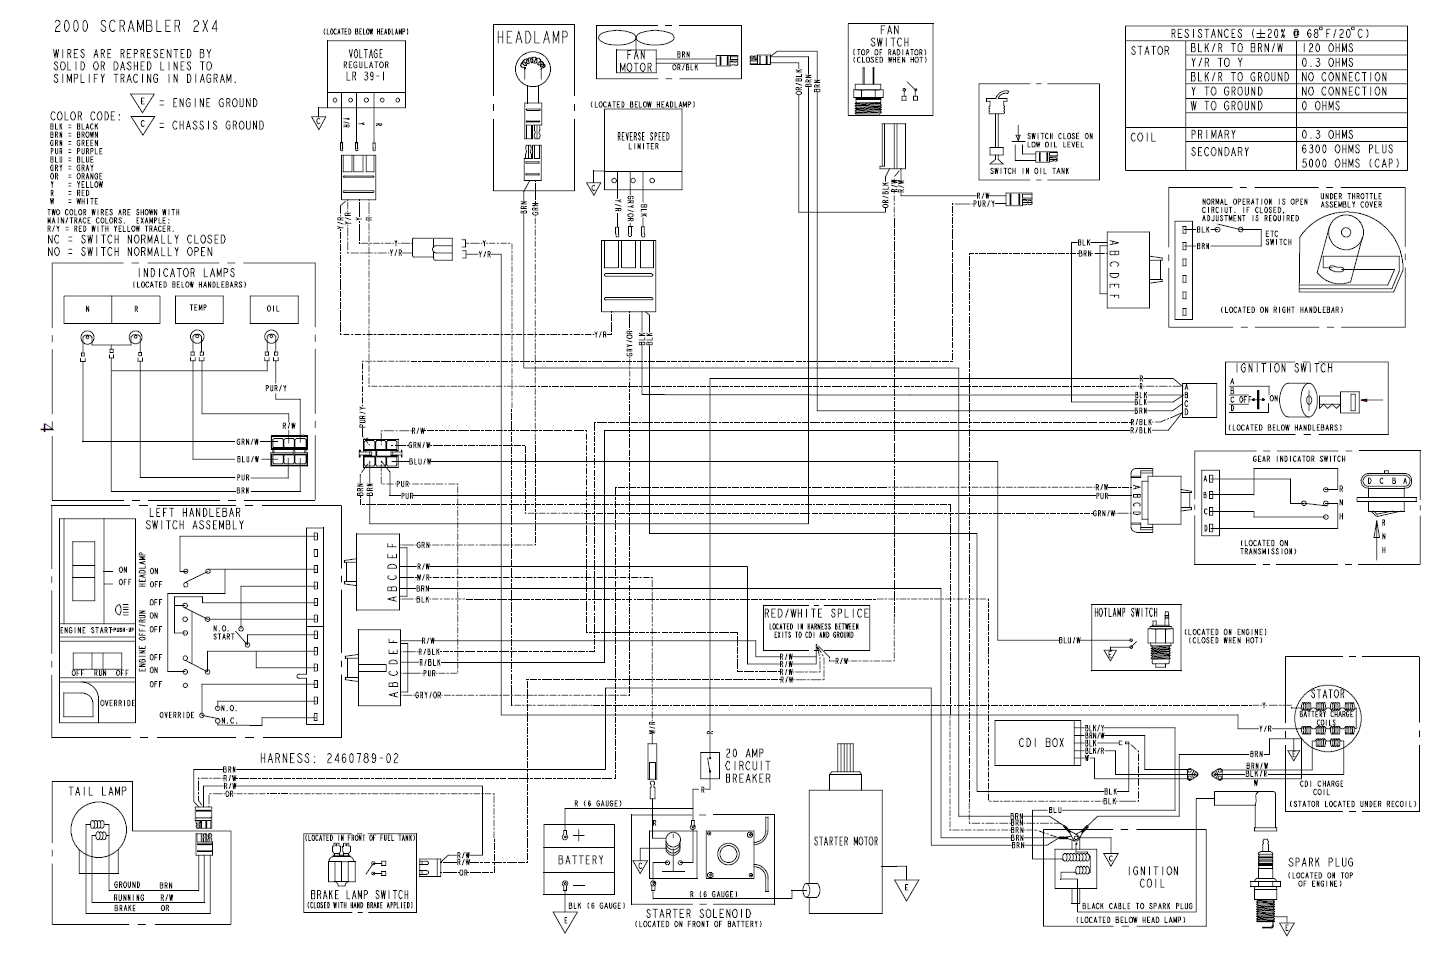 2002 polaris ranger wiring diagram wiring diagram2002 polaris ranger wiring diagram